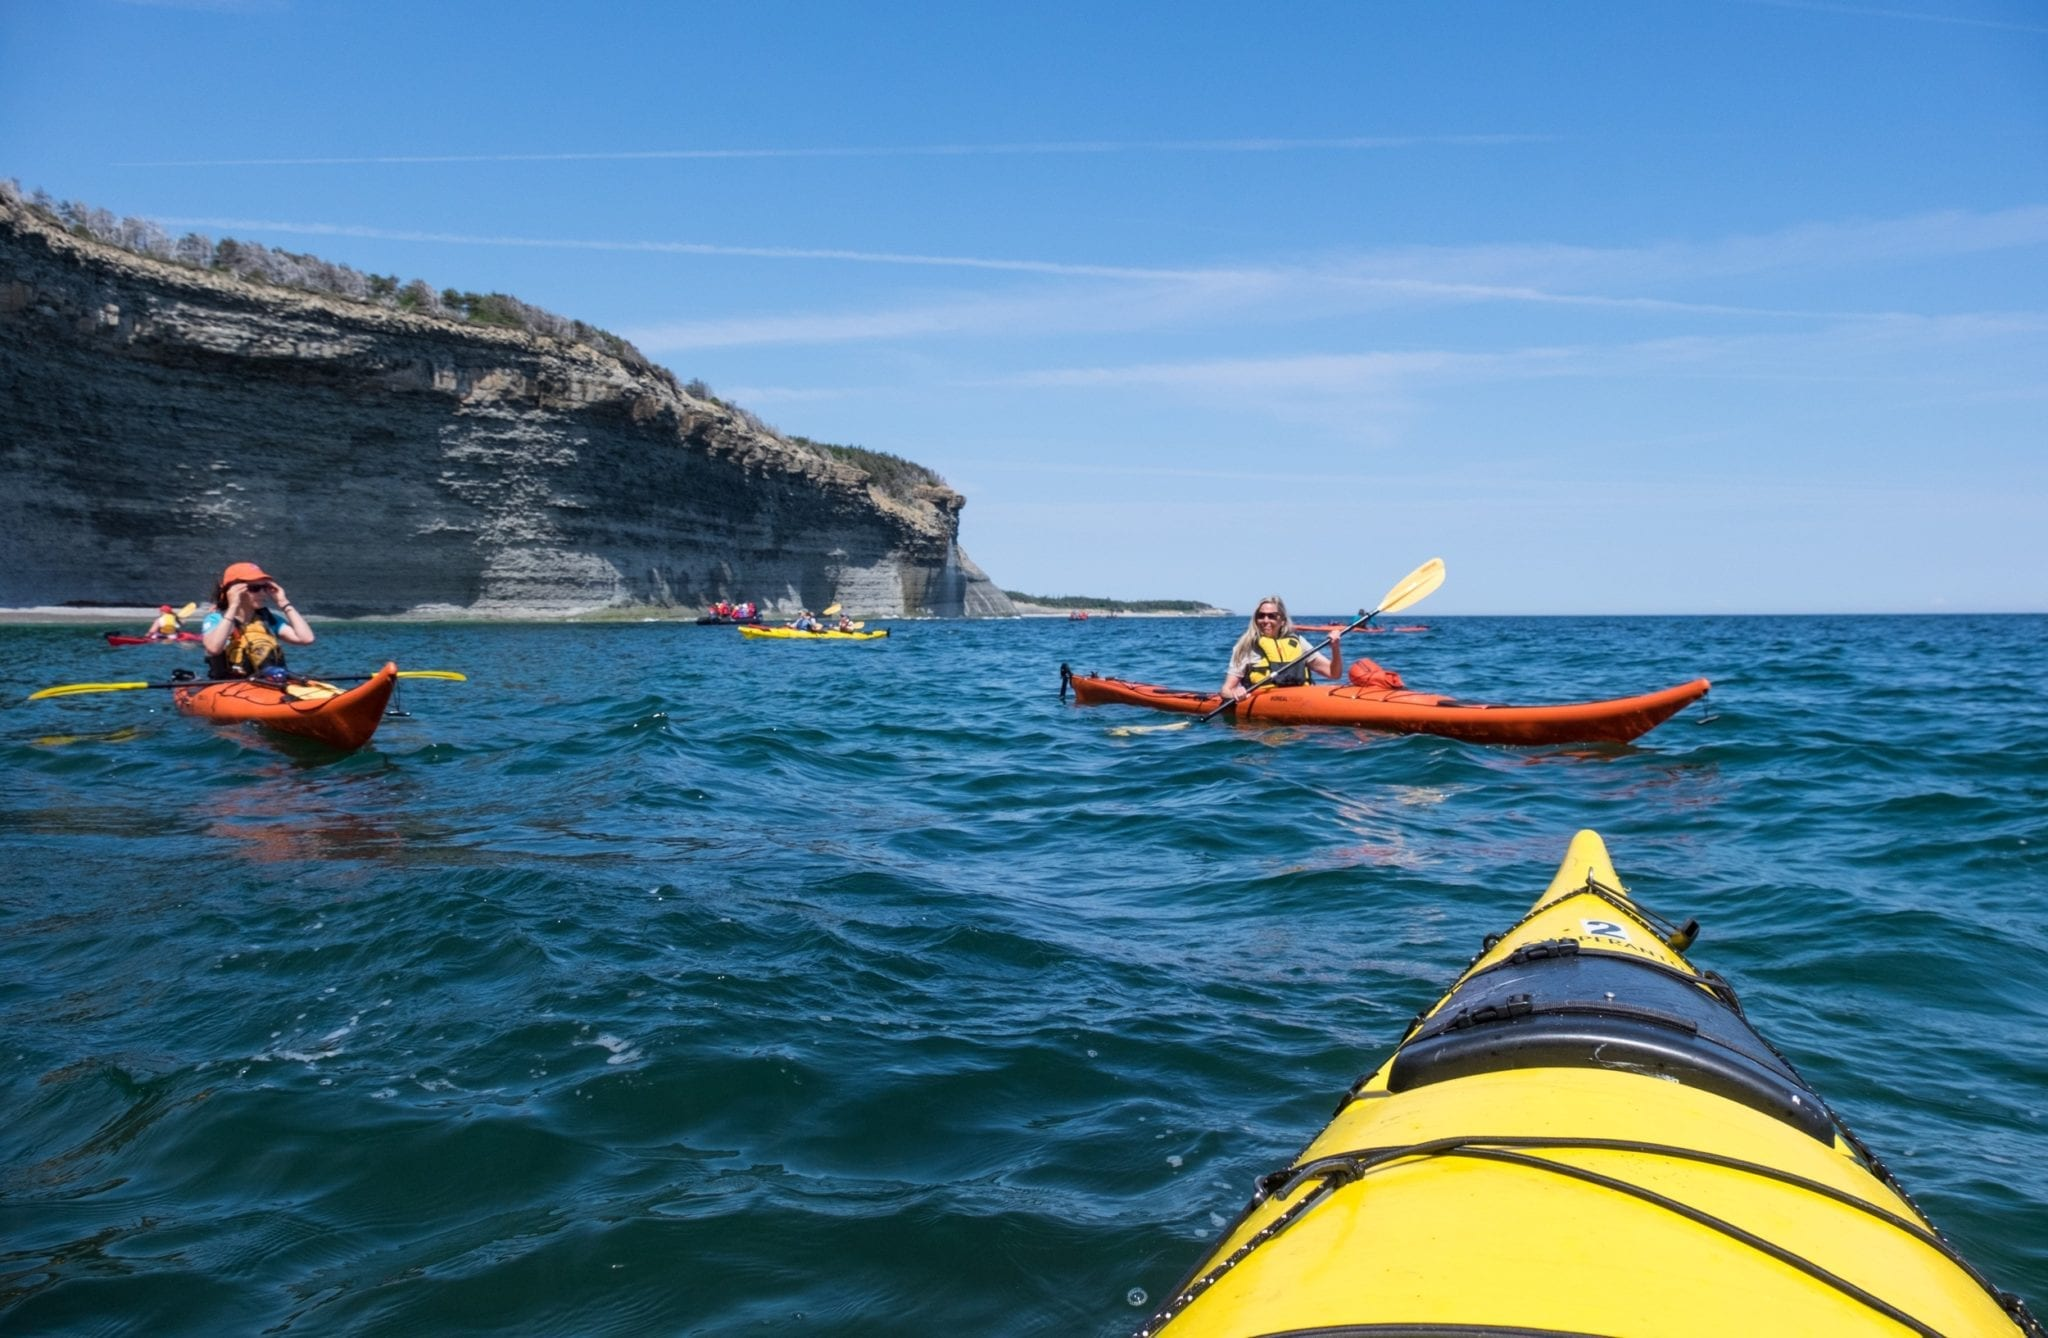 Shot from the front of a yellow kayak, you see several kayakers in bright blue water and cliffs in the background.